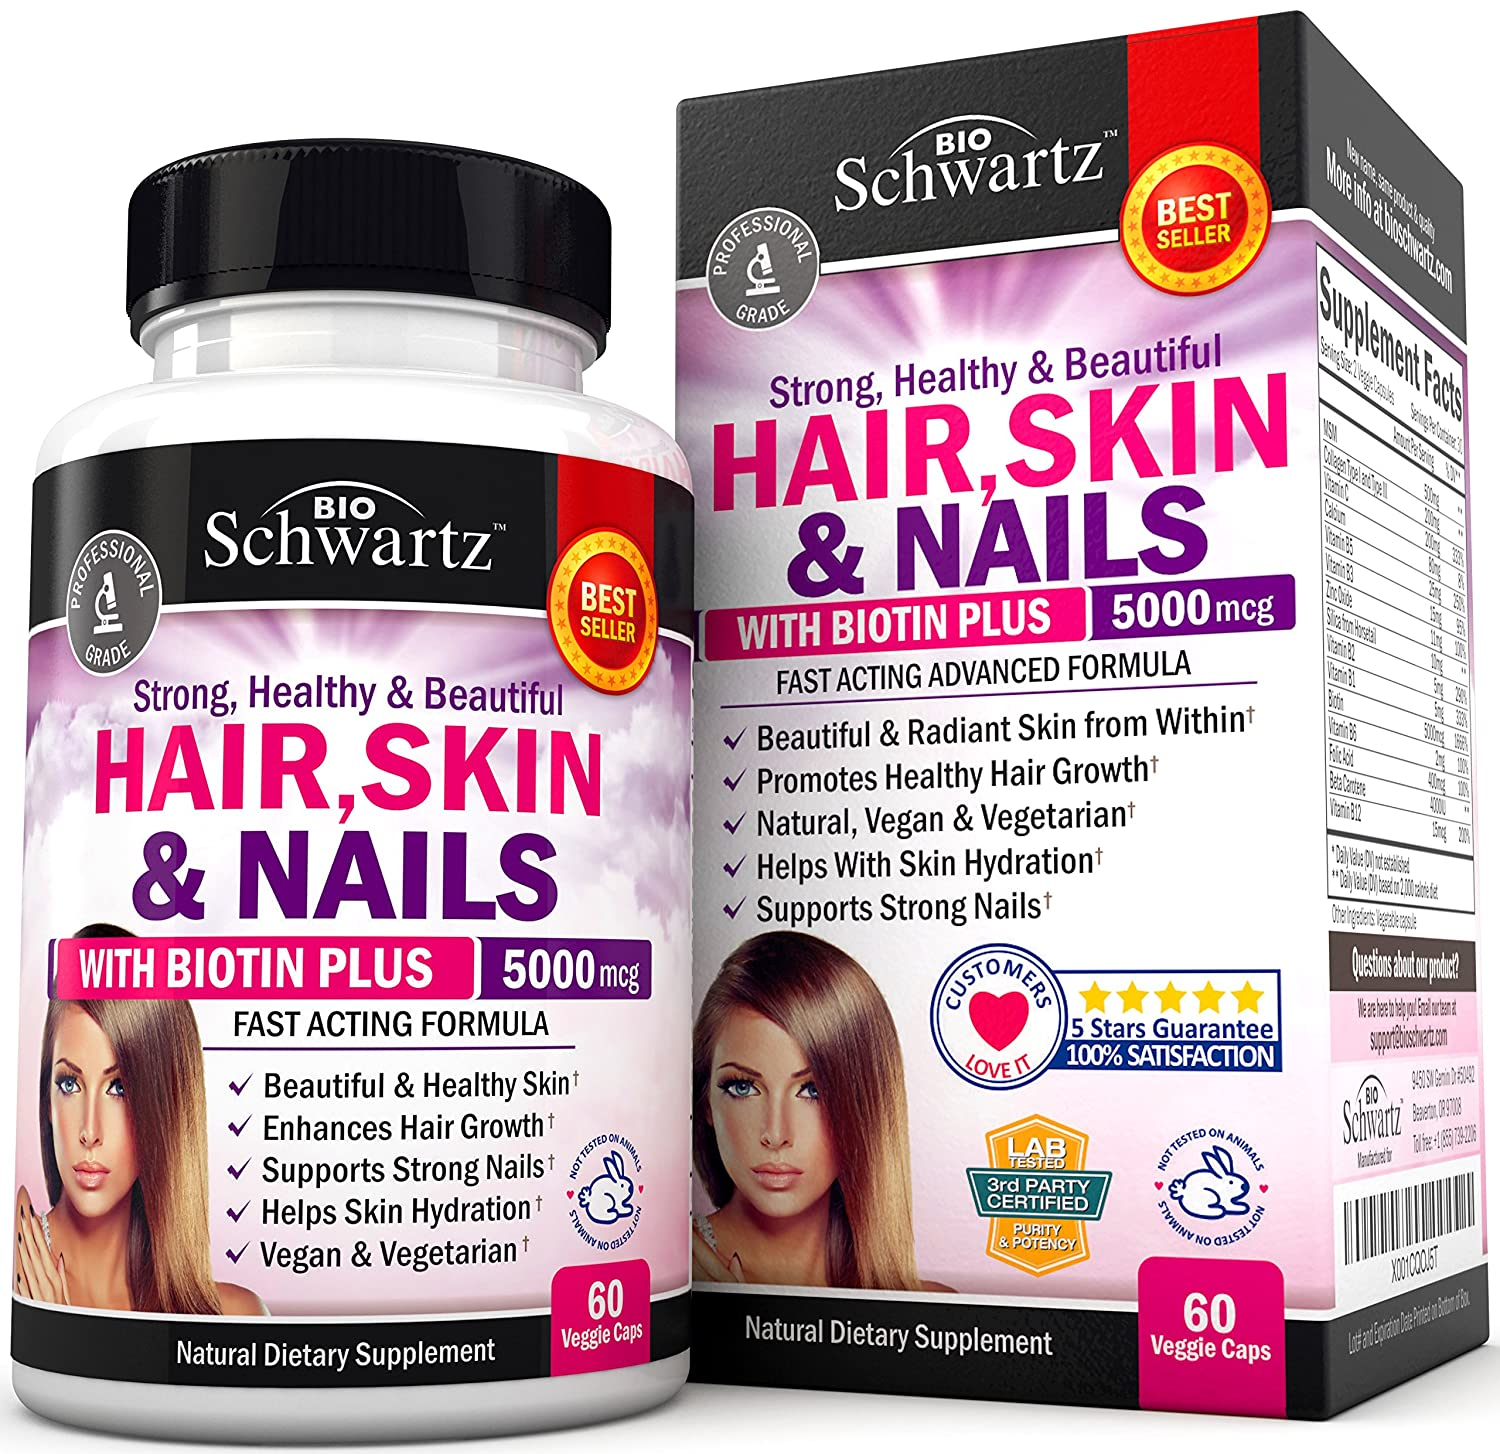 Amazoncom Hair Skin And Nails Vitamin With Biotin  Promotes - How much biotin to take for hair growth